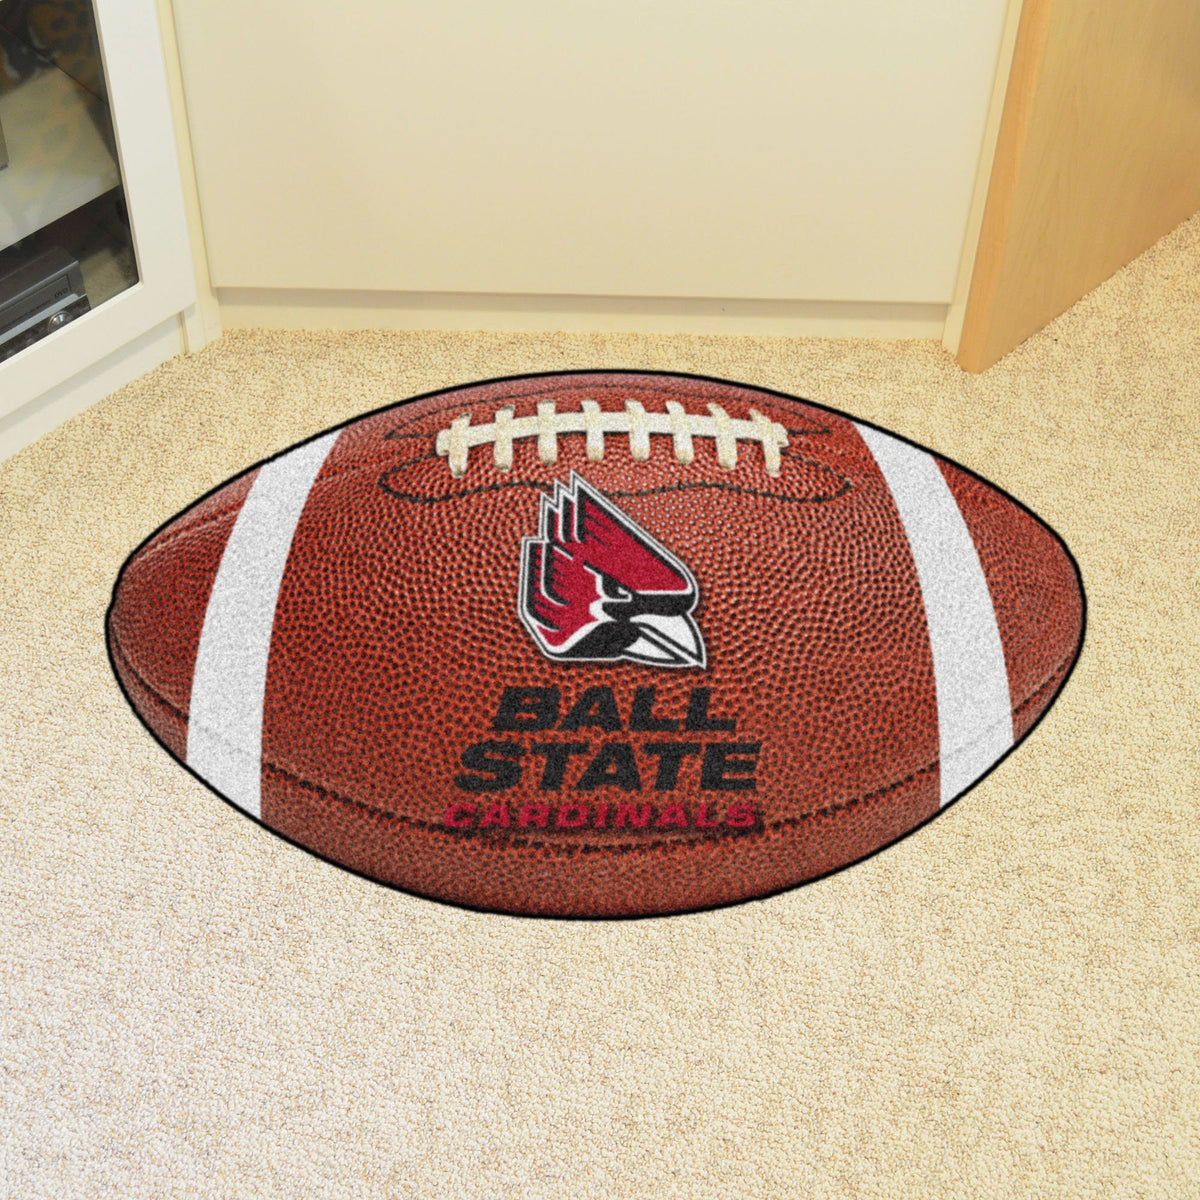 Collegiate - Football Mat: A - K Collegiate Mats, Rectangular Mats, Football Mat, Collegiate, Home Fan Mats Ball State